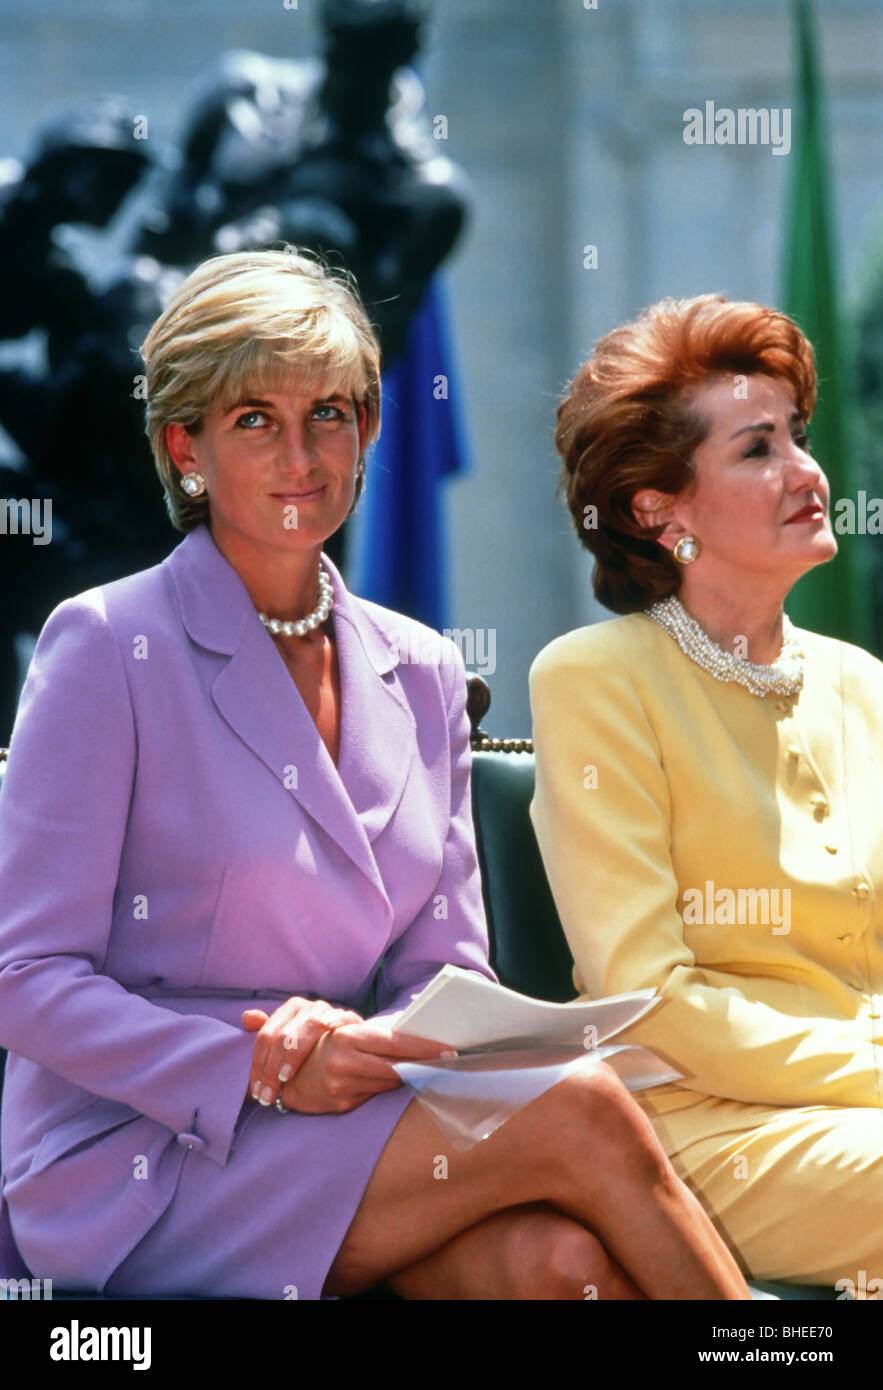 Elizabeth Dole High Resolution Stock Photography and Images - Alamy